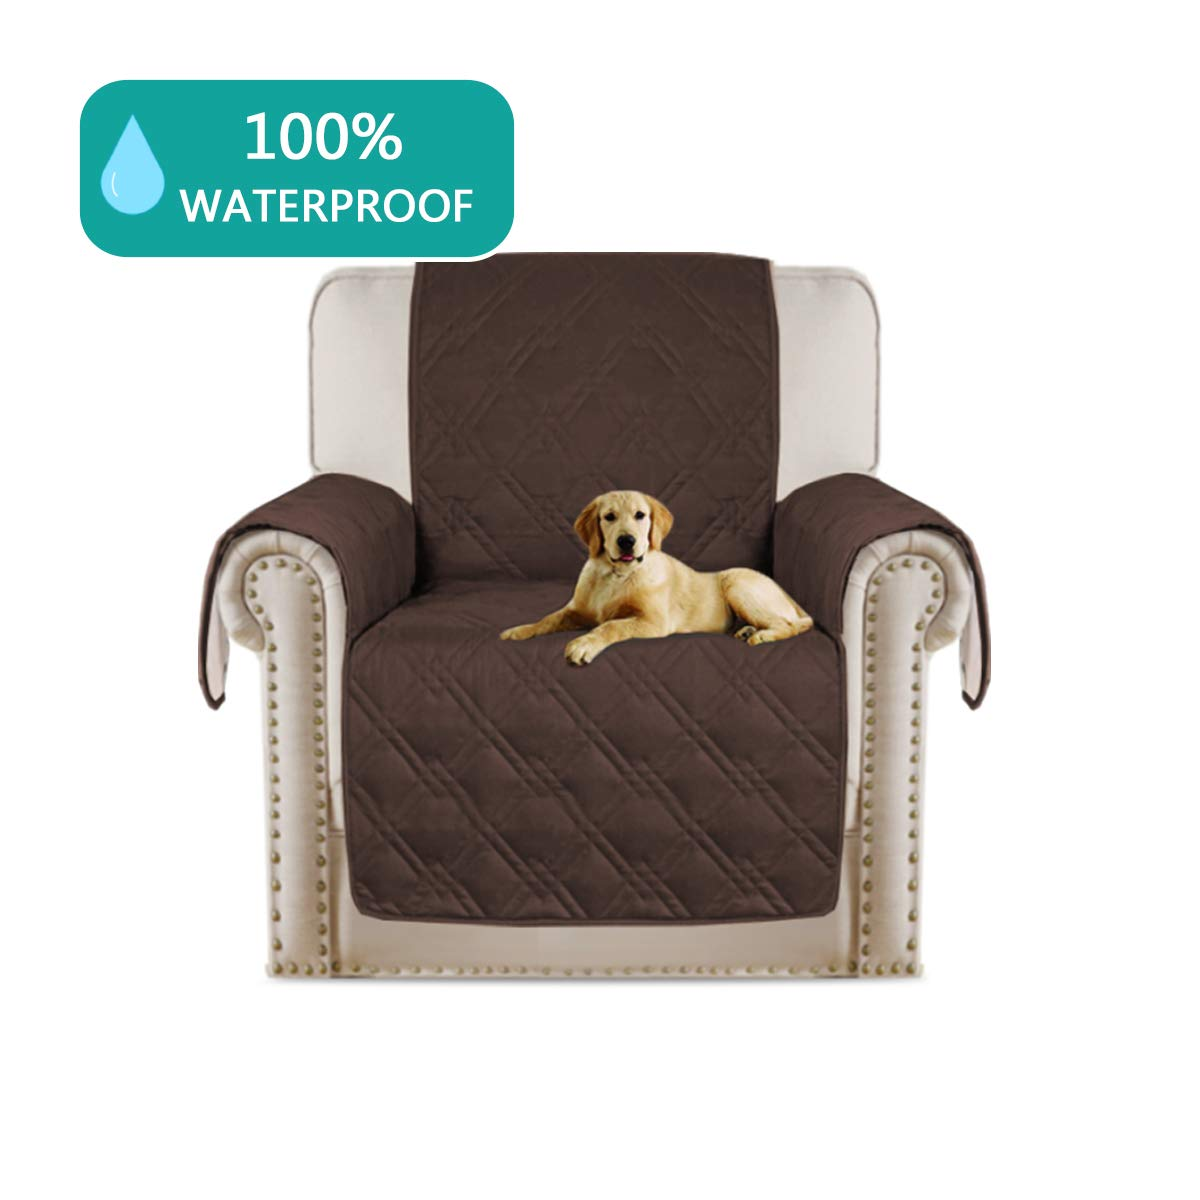 Turquoize Quilted Furniture Recliner Protector Anti-Skid, Microfiber Sofa Chair Protector/Slipcovers with Waterresistant PVC Backing Stay in Place (Recliner: Brown) - 79'' X 68'' by Turquoize